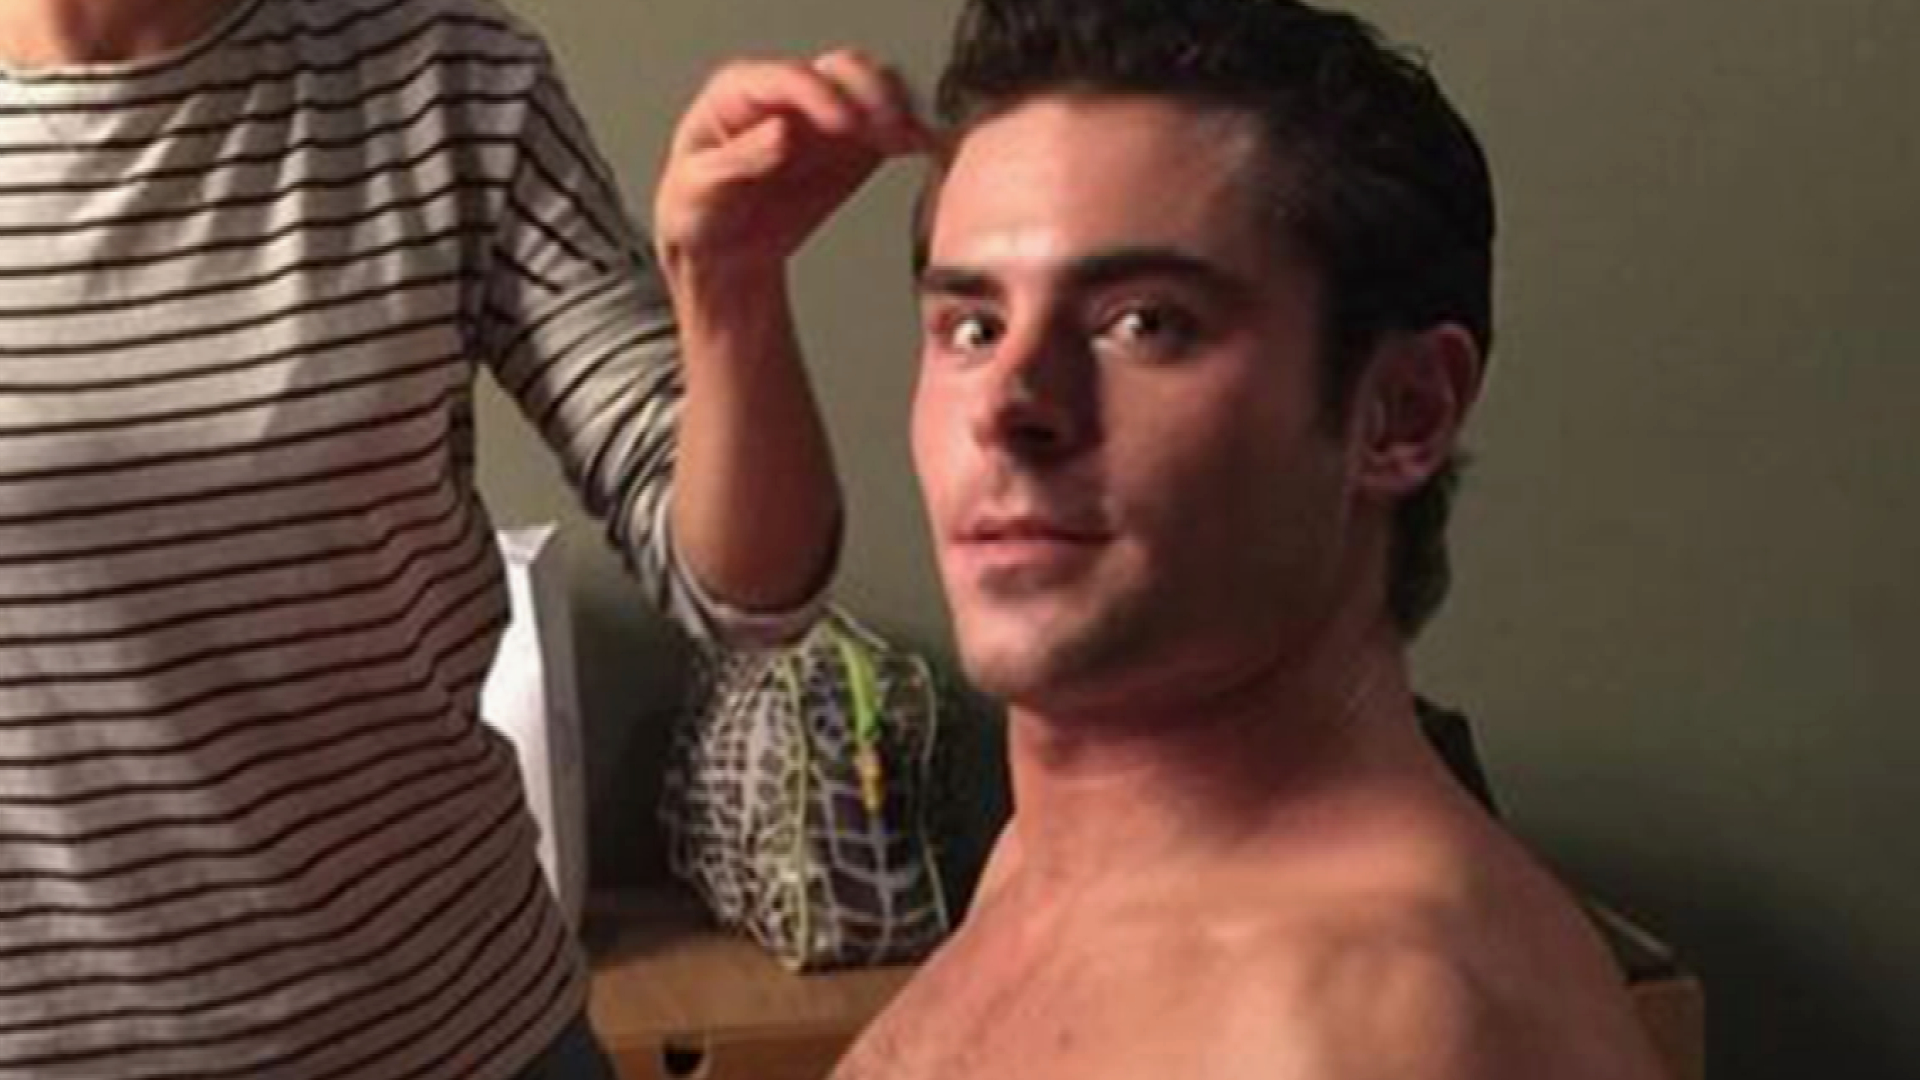 Zac Efron Has Muscles for Days